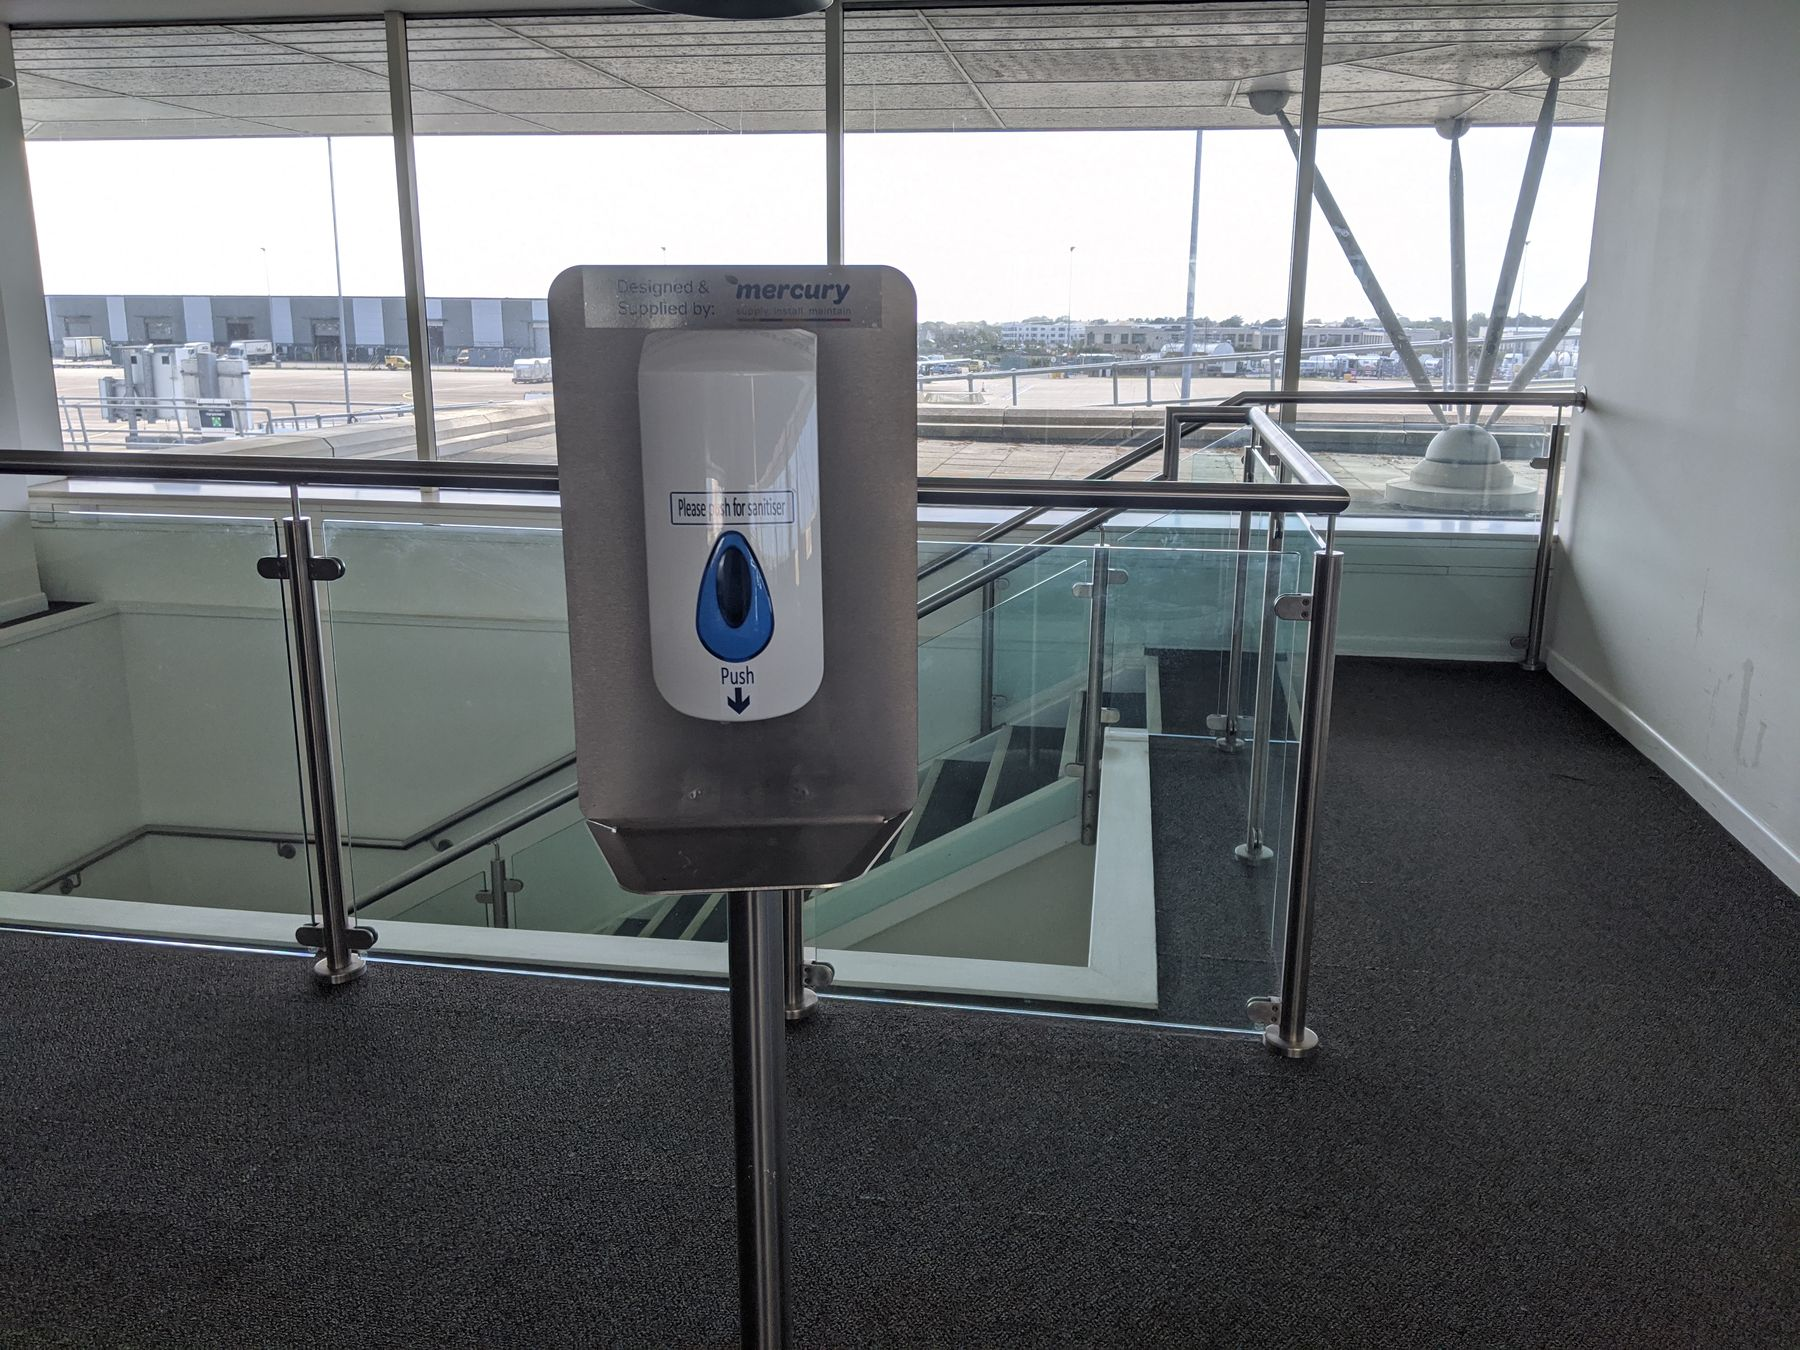 Hand sanitizer station at the airport